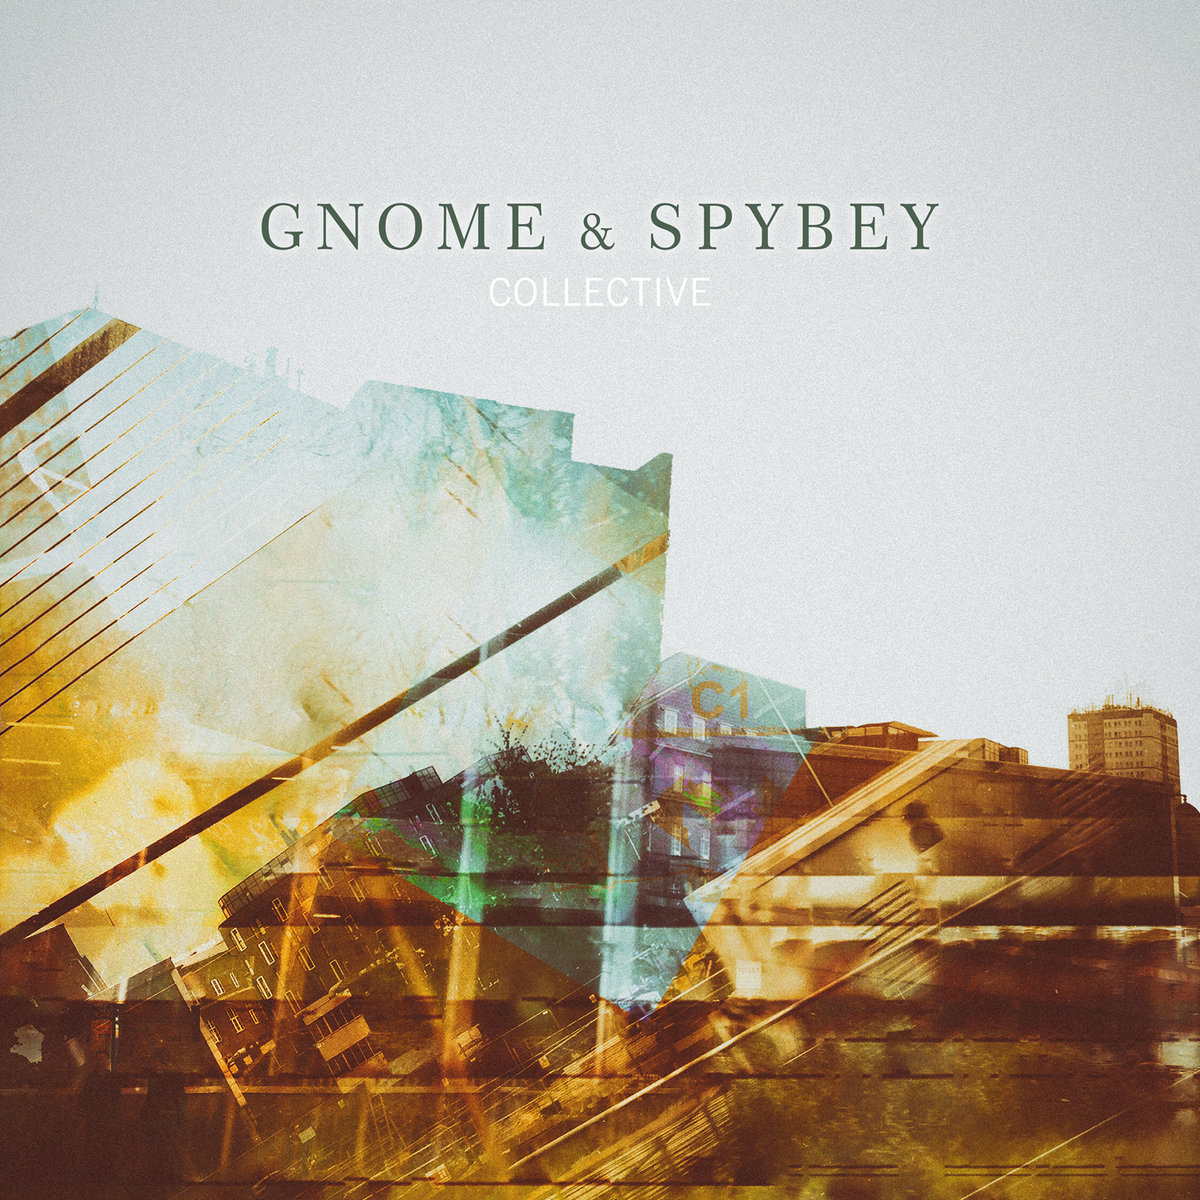 Gnome&spybey cover